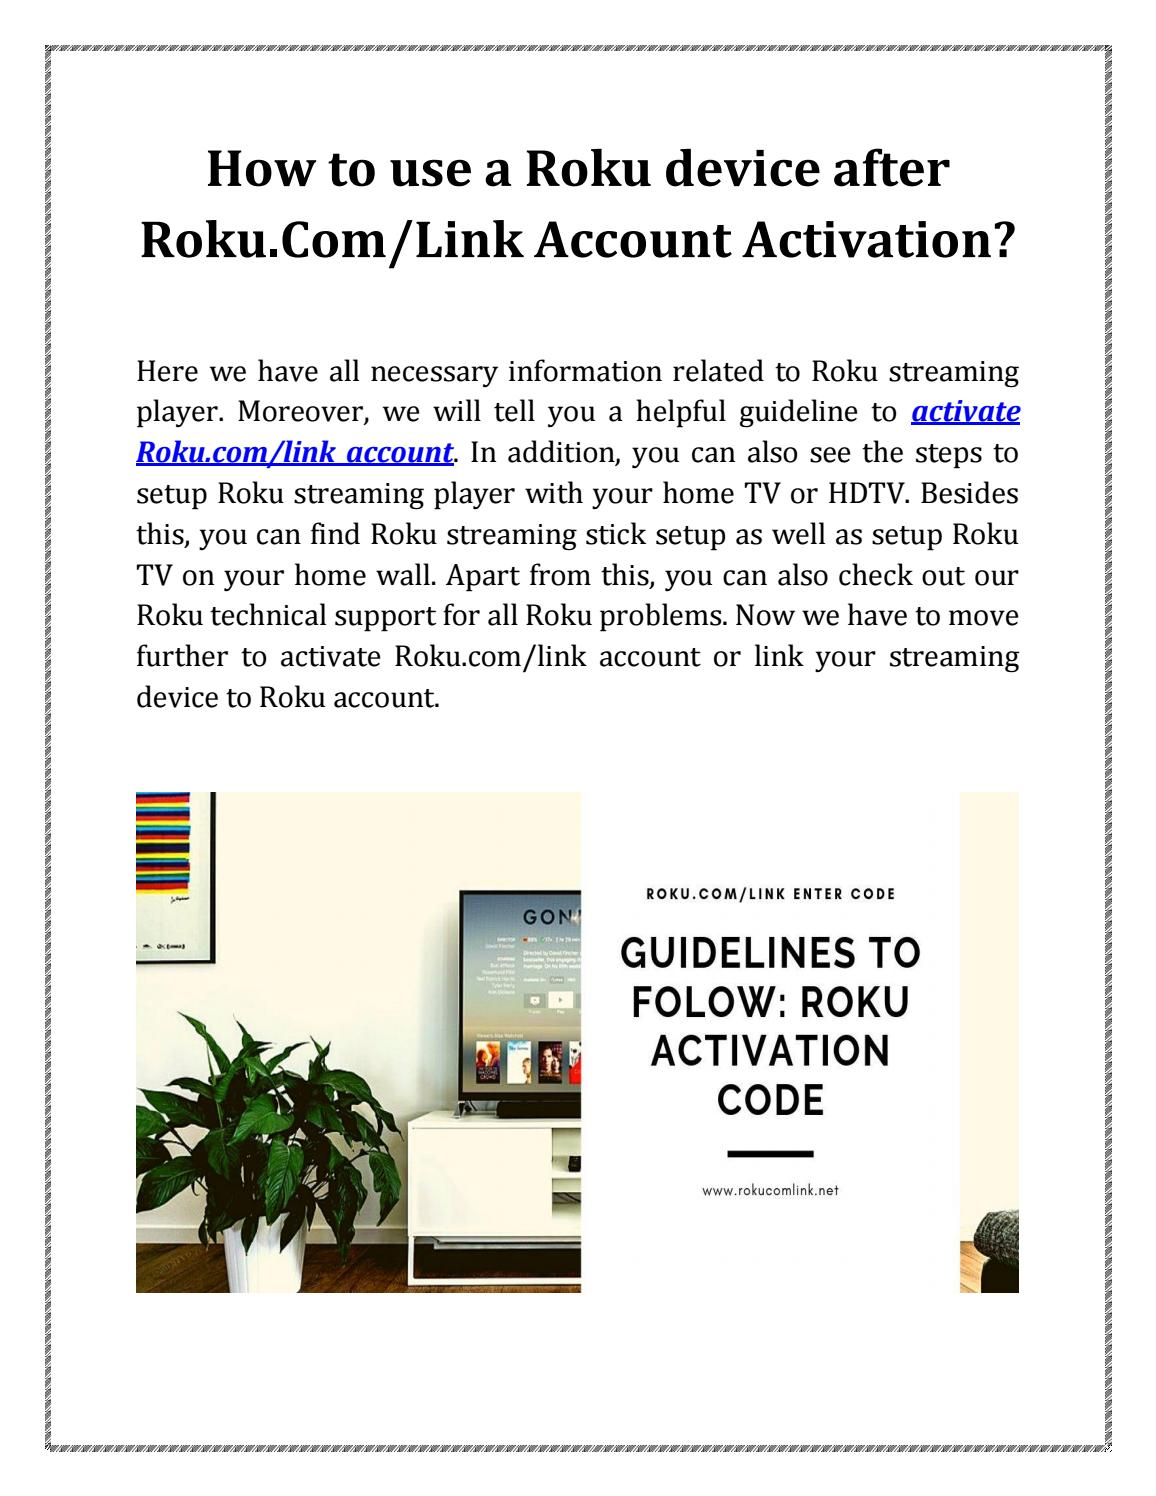 How to use Roku device after Roku.Com/Link Account Activation - Stream Free Roku Channels 2019